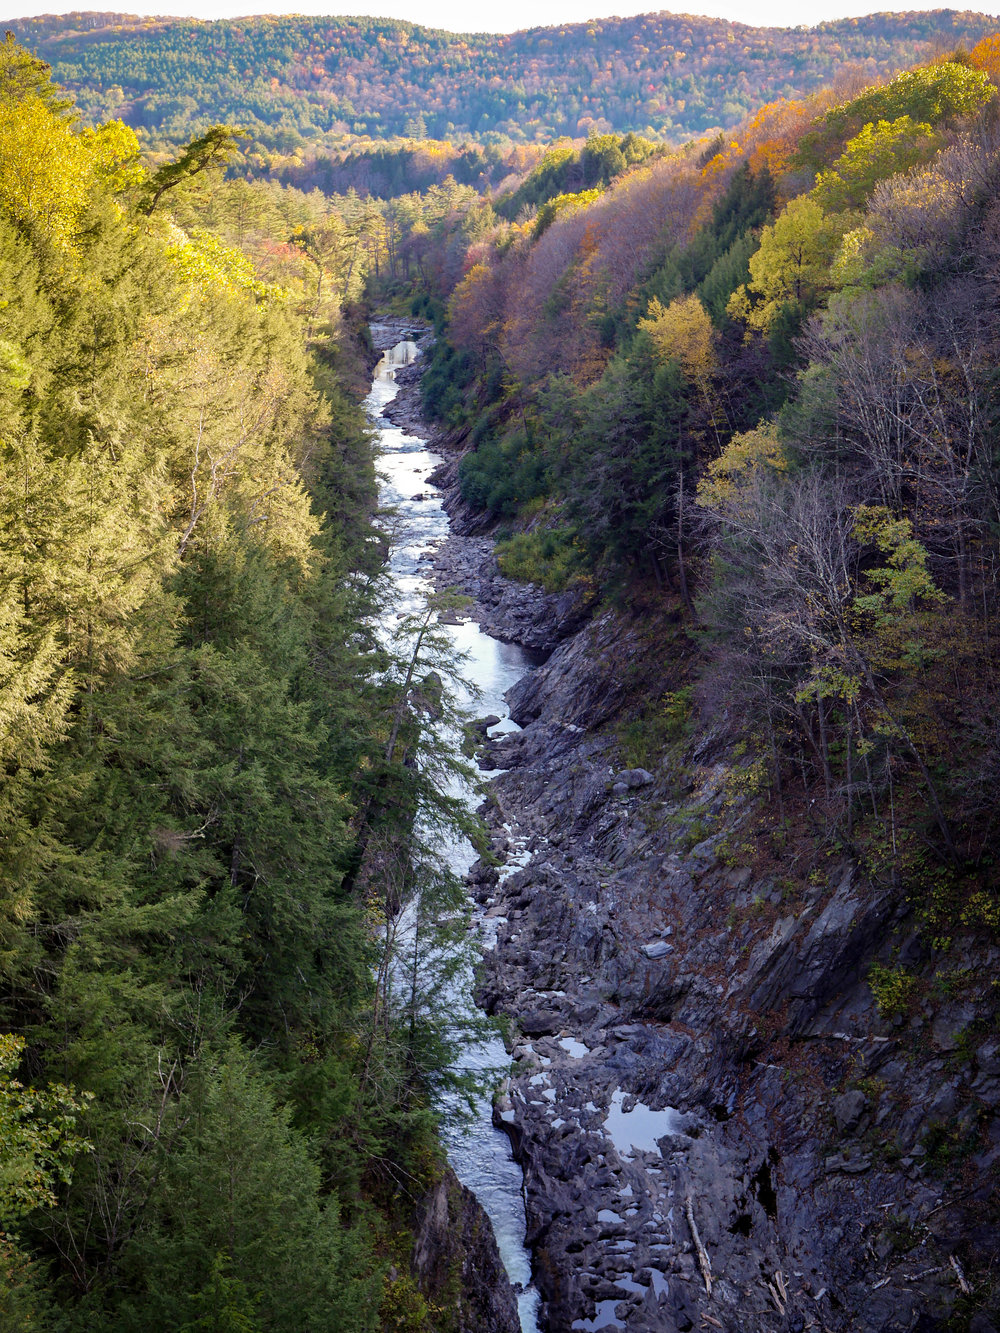 The Quechee Gorge and fall foliage